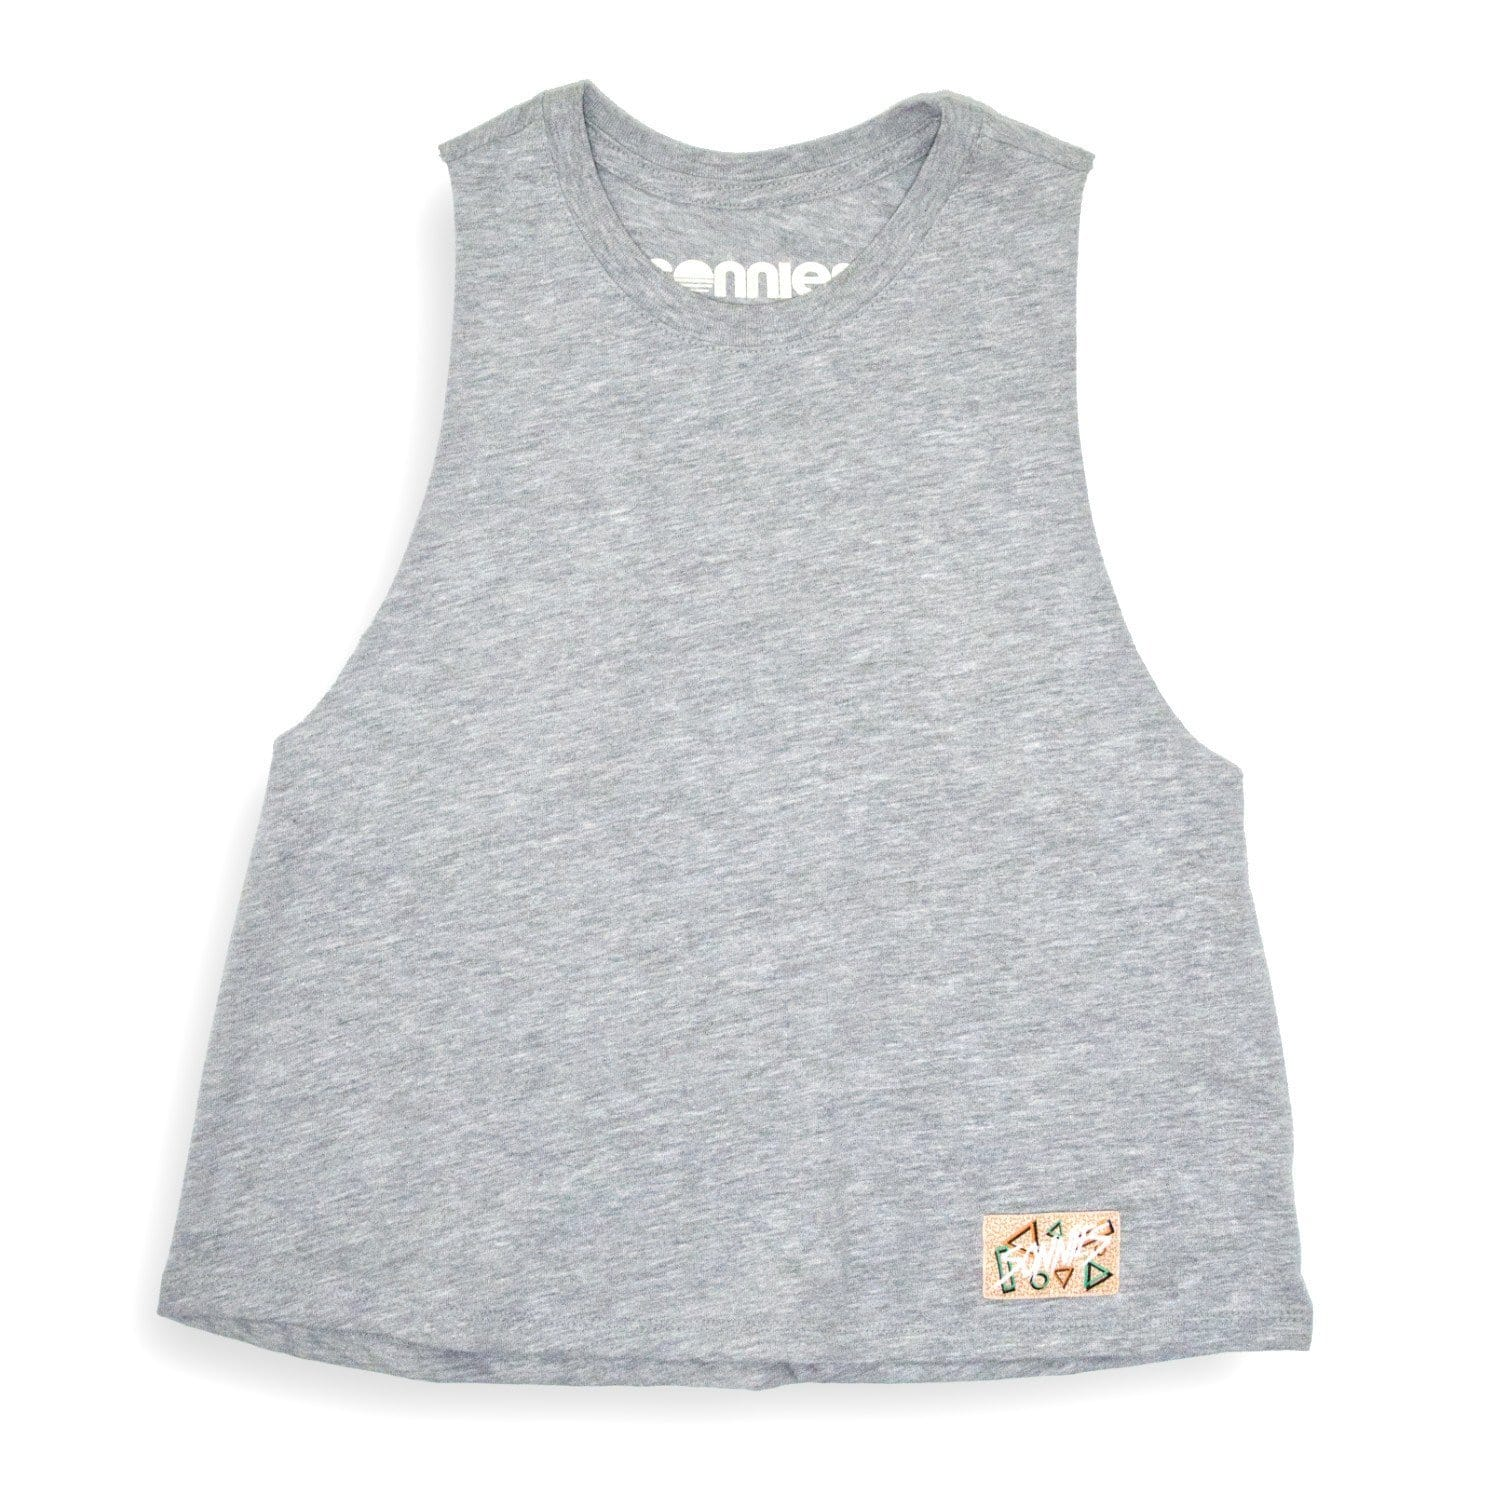 Sonnies Outside Womens Hiking Clothes -  80s Gray Tank Top